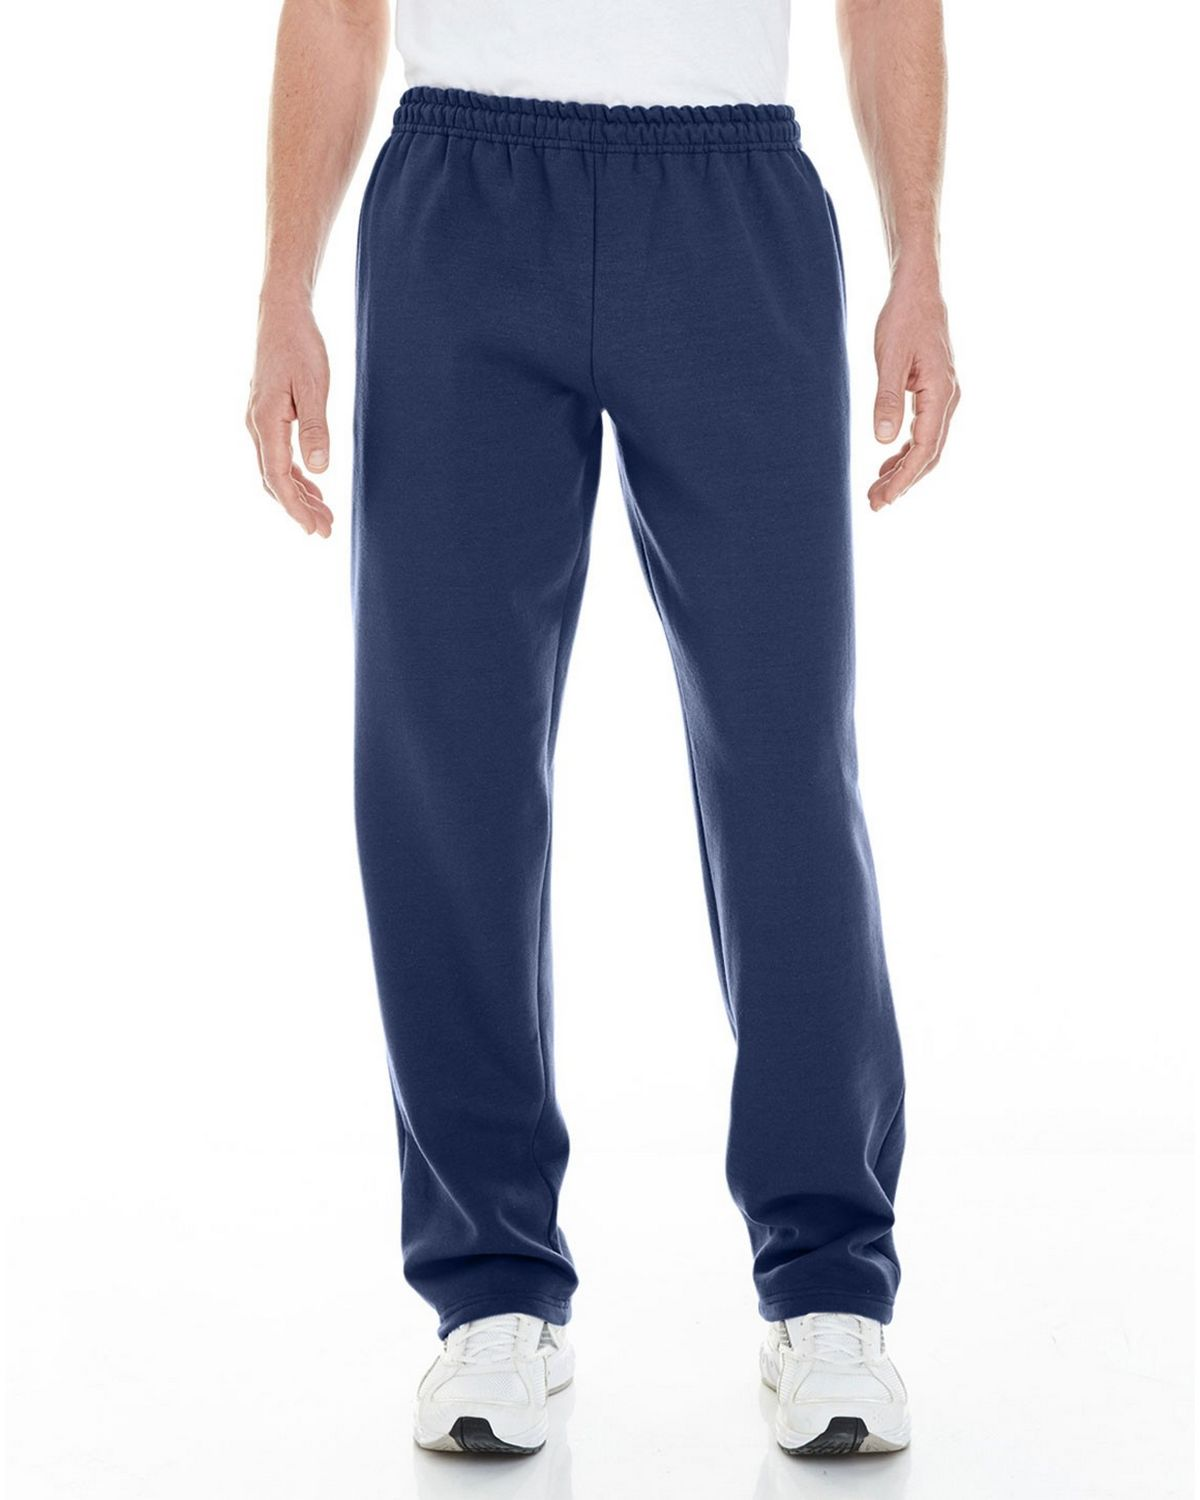 Gildan G18300 Heavy Blend Adult Sweatpants - Navy - 5X G18300